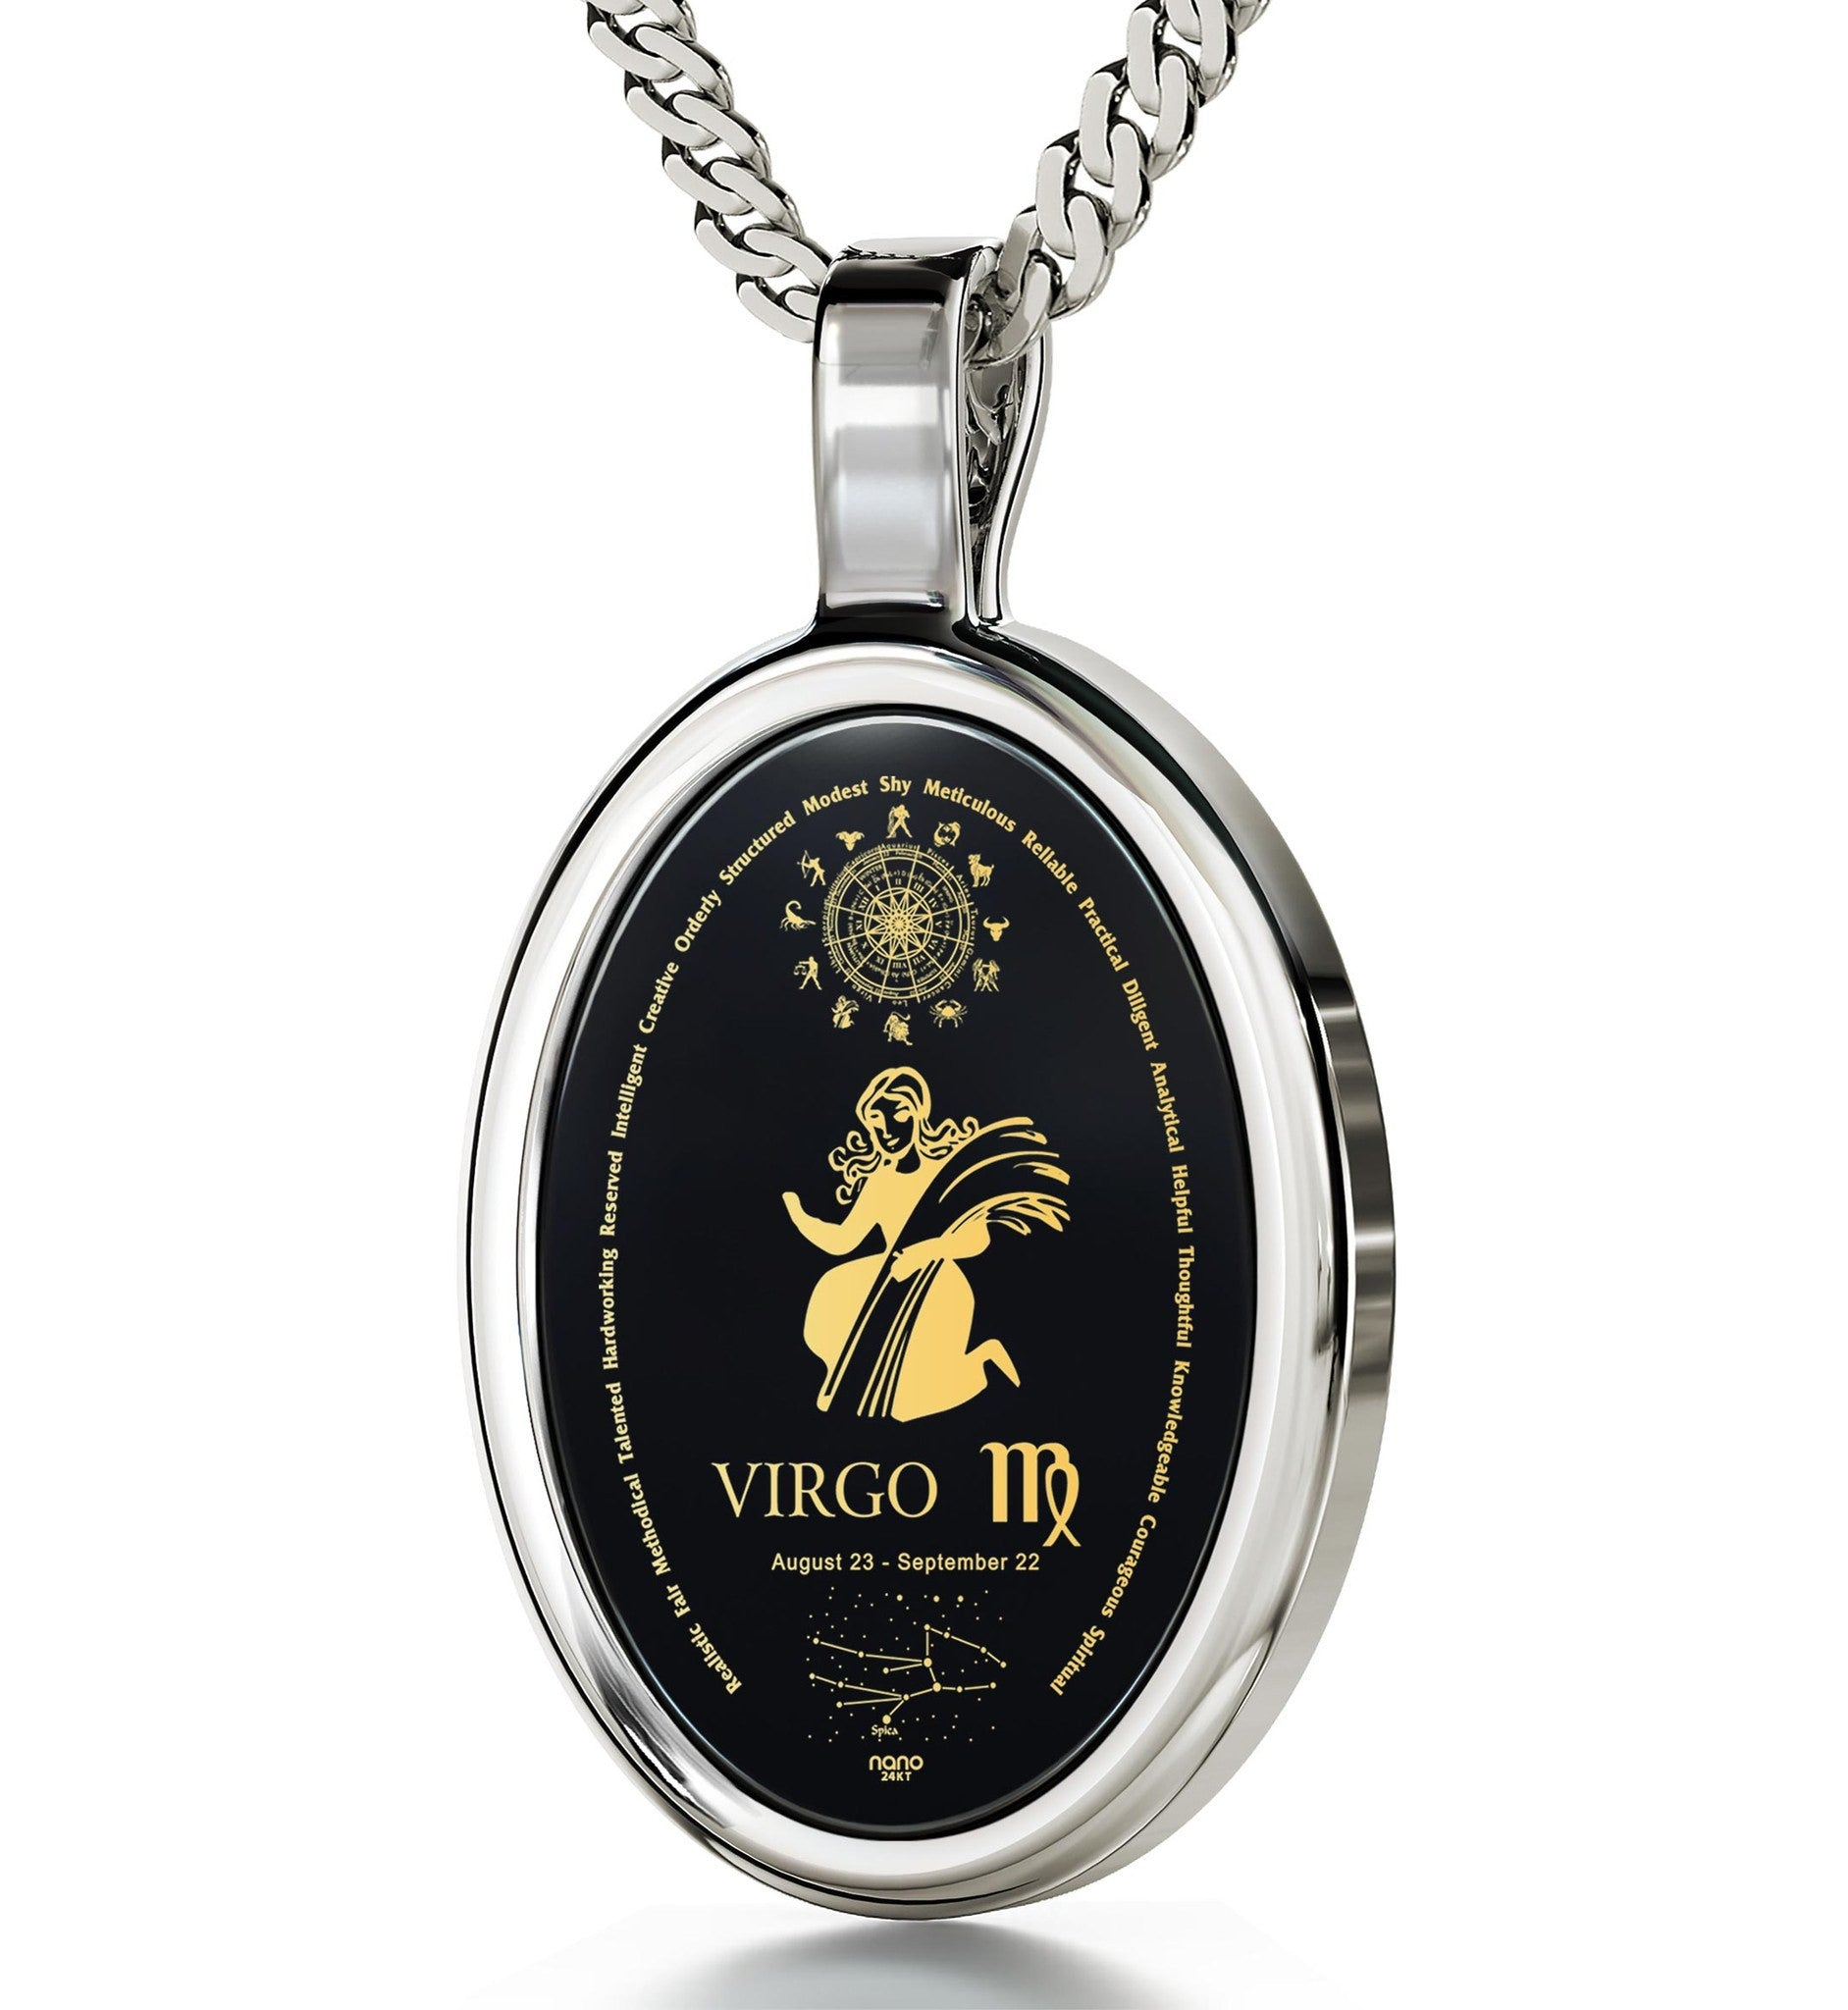 Top Gift Ideas for Women: Virgo Jewelry, Horoscope Necklace, Good Christmas Presents for Girlfriend